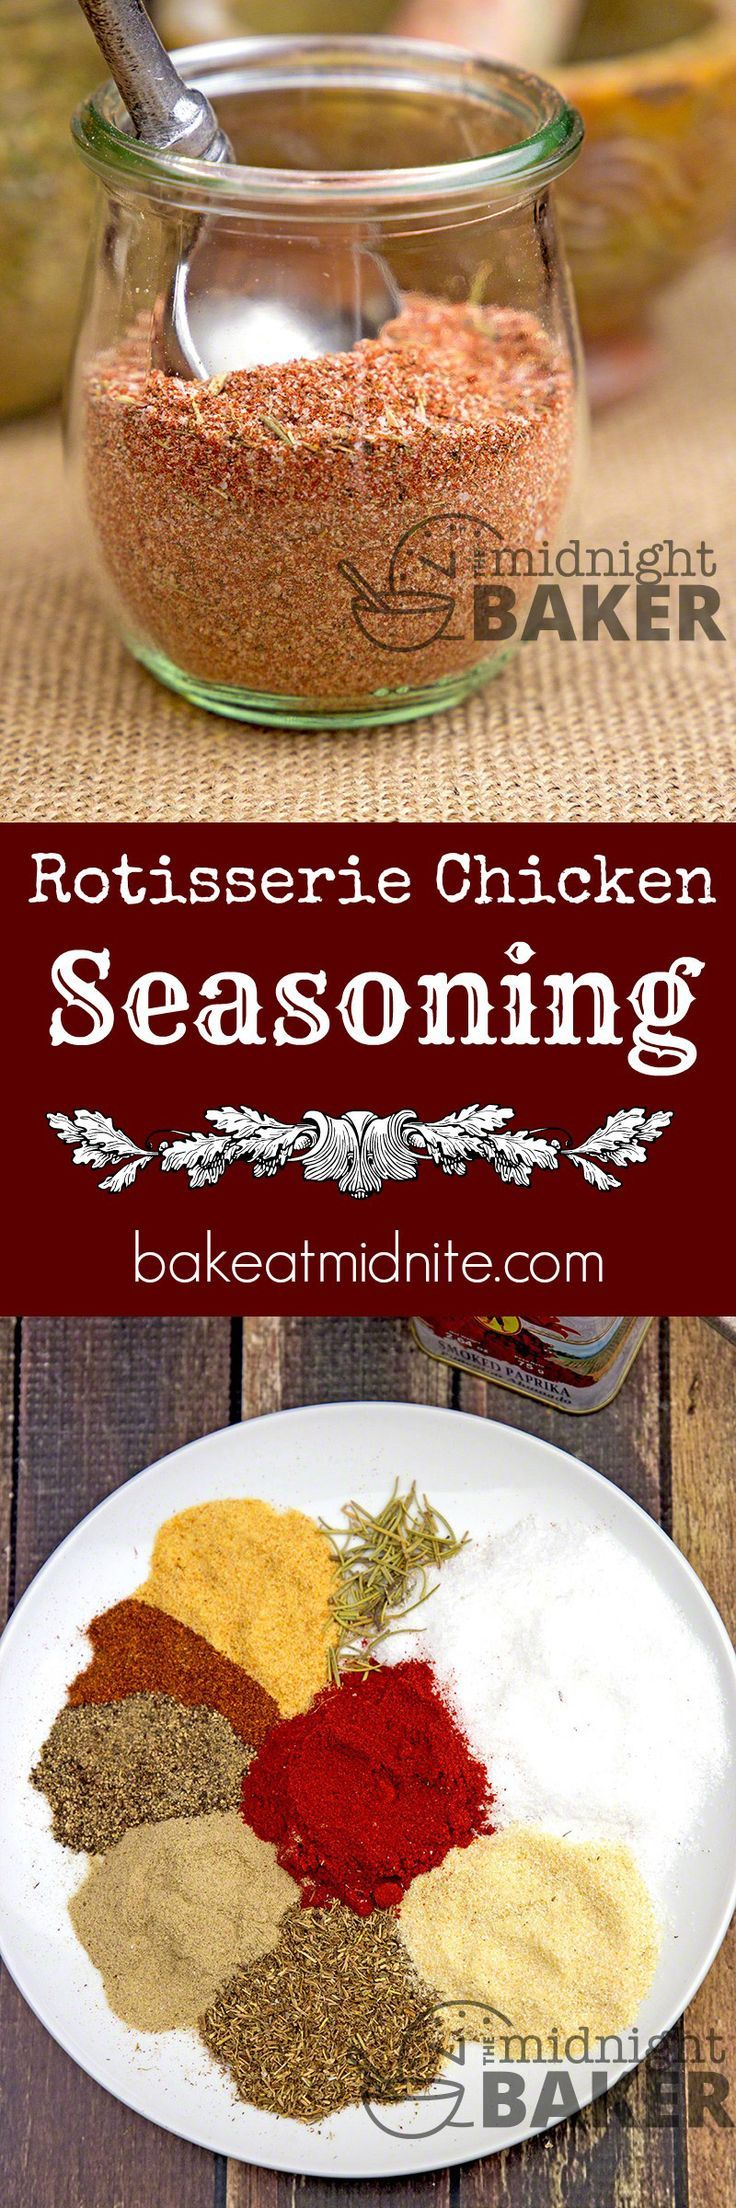 Rotisserie Chicken Seasoning  The Midnight Baker is part of Rotisserie chicken seasoning - You'll never buy another rotisserie chicken at the store once you make your own wth this seasoning! Rotisserie Chicken Seasoning Secret To Great Taste The secret to great tasting roast chicken is the seasoning  That's the reason the deli chickens taste so good  However, they are also pretty expensive  It's worth it for the occasional   Read More »